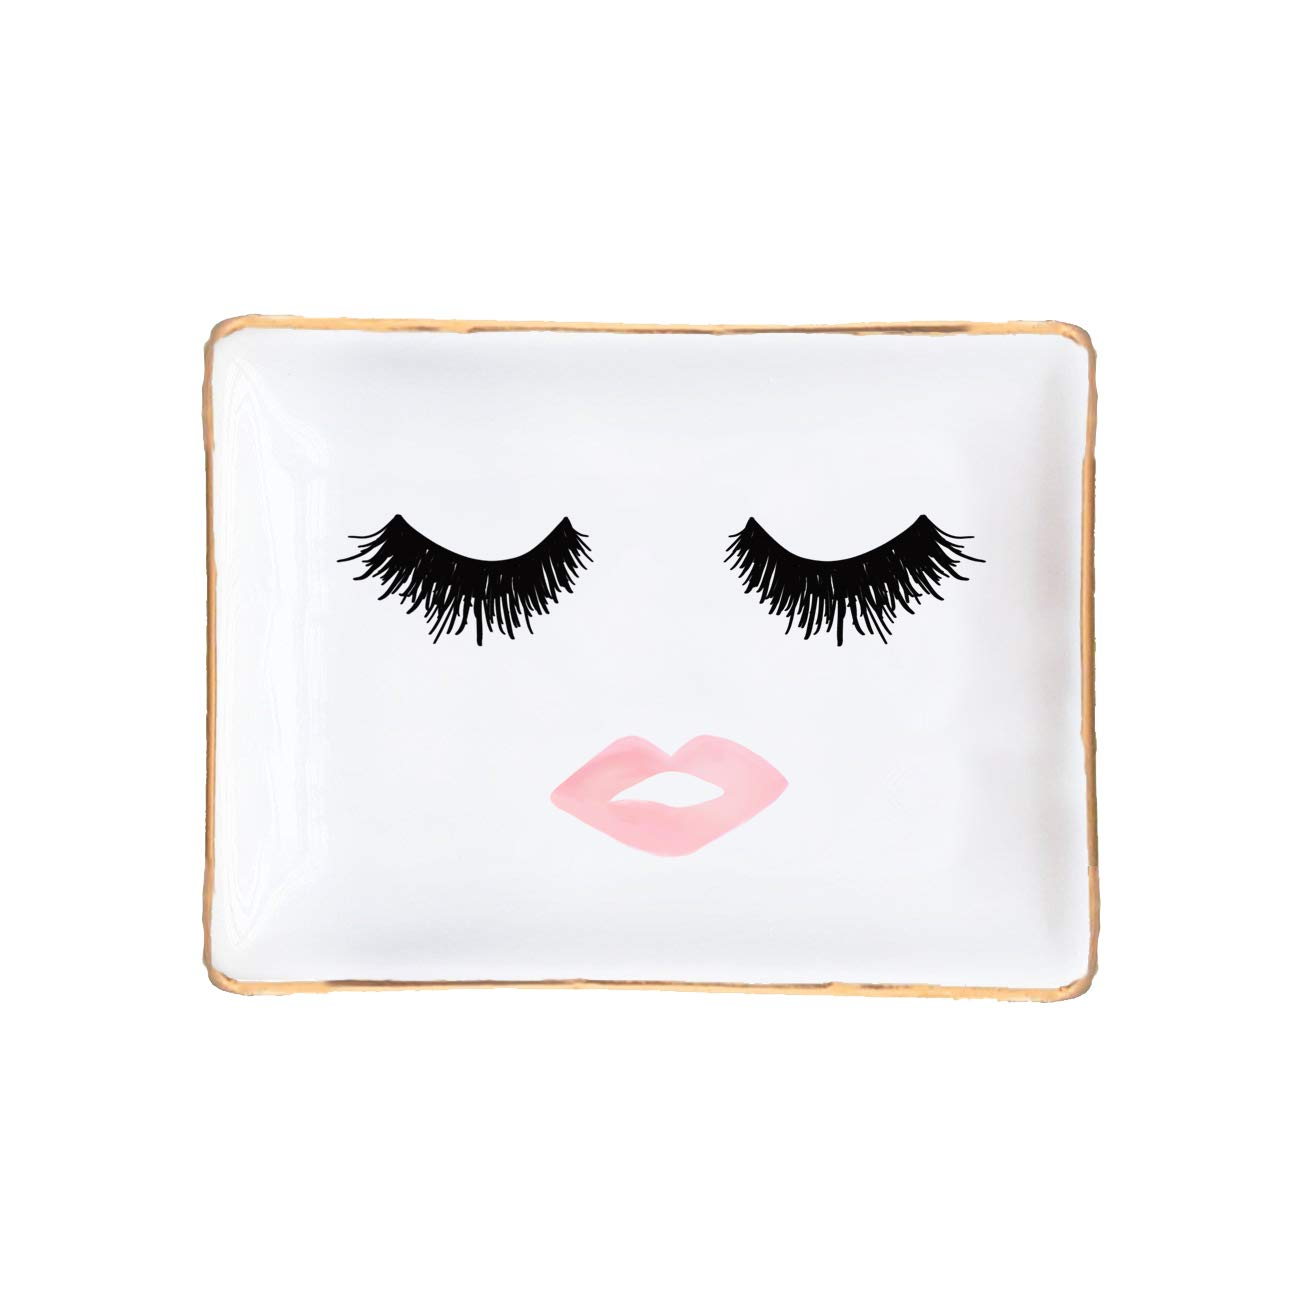 Eyelashes and Lips Face Ceramic Jewelry Dish Gift for Her Pink and Gold Office Decor Lashes Makeup Cosmetic Bridesmaid Organizer Trinket Tray Small Eyelash Desk Accessories Hand Drawn